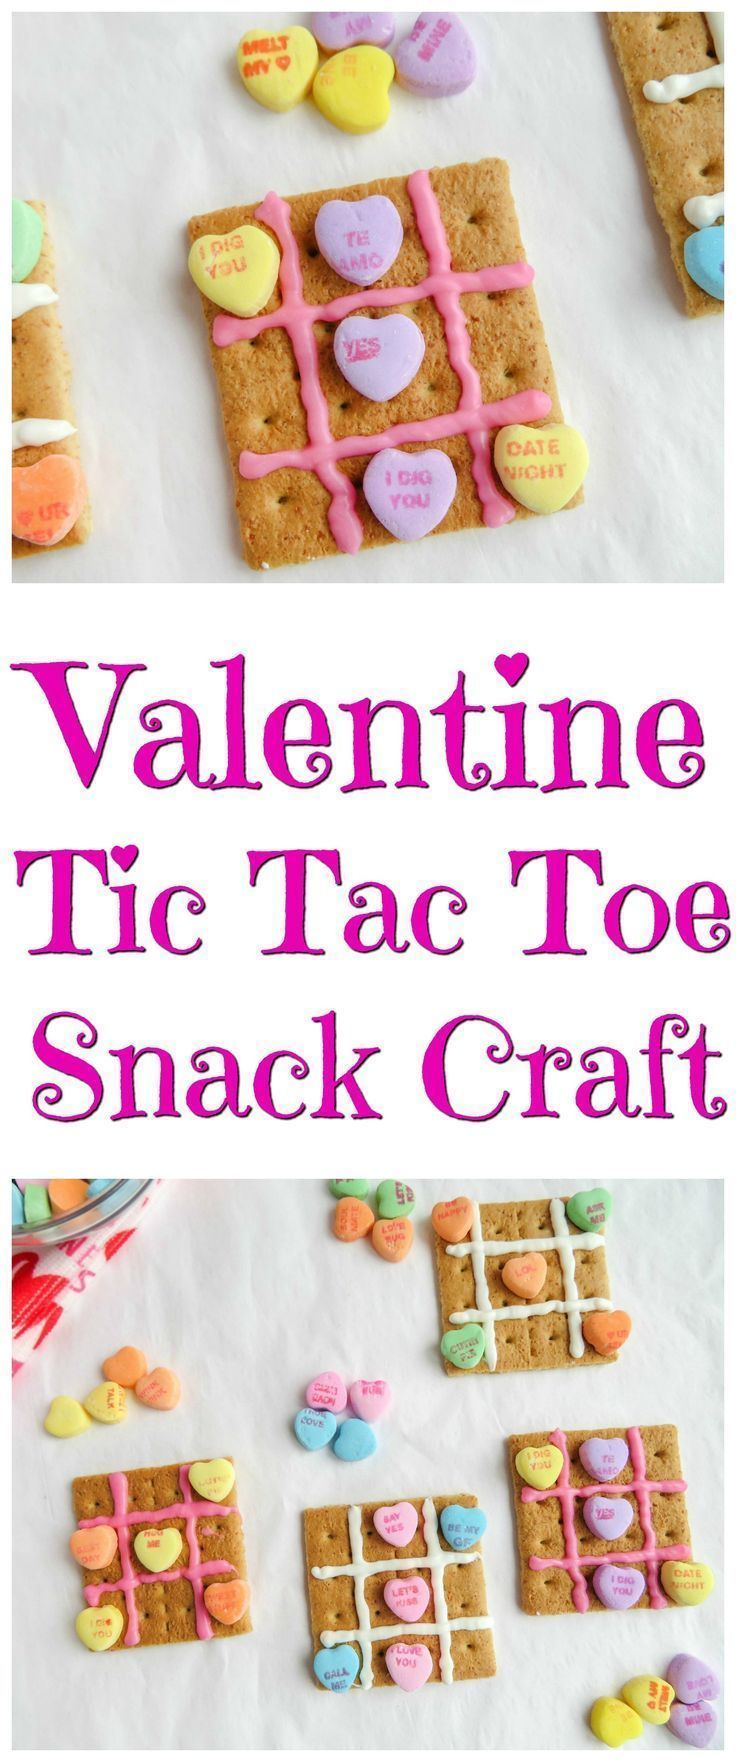 Valentine Tic Tac Toe Snack Craft   Perfect for a classroom party or kids group. Graham crackers, frosting, and conversation hearts